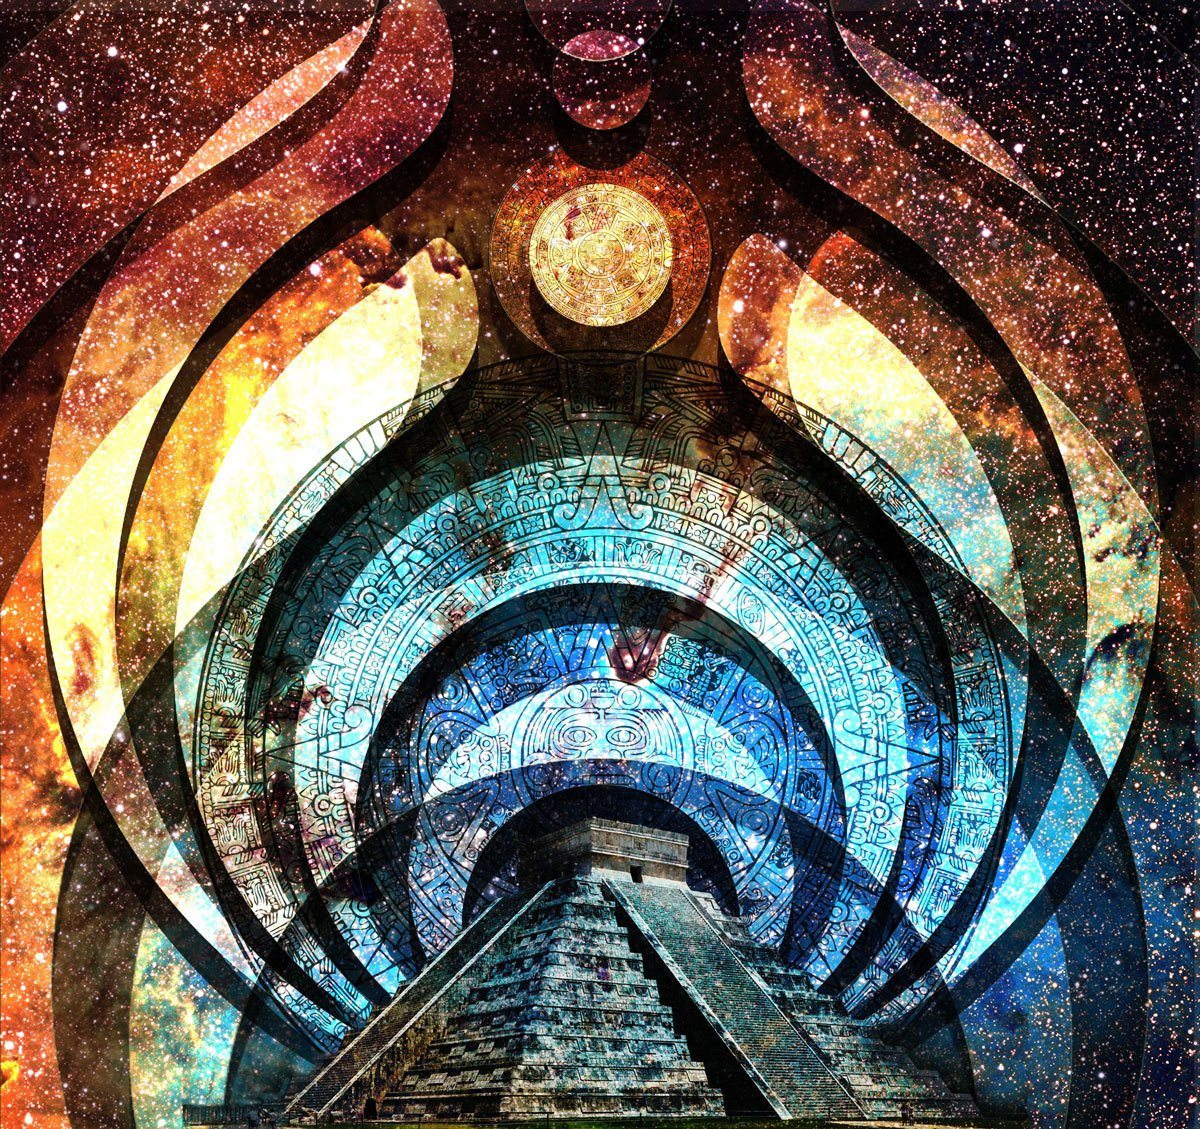 Bassnectar-Elephant-Designs-wide-jpeg-web1